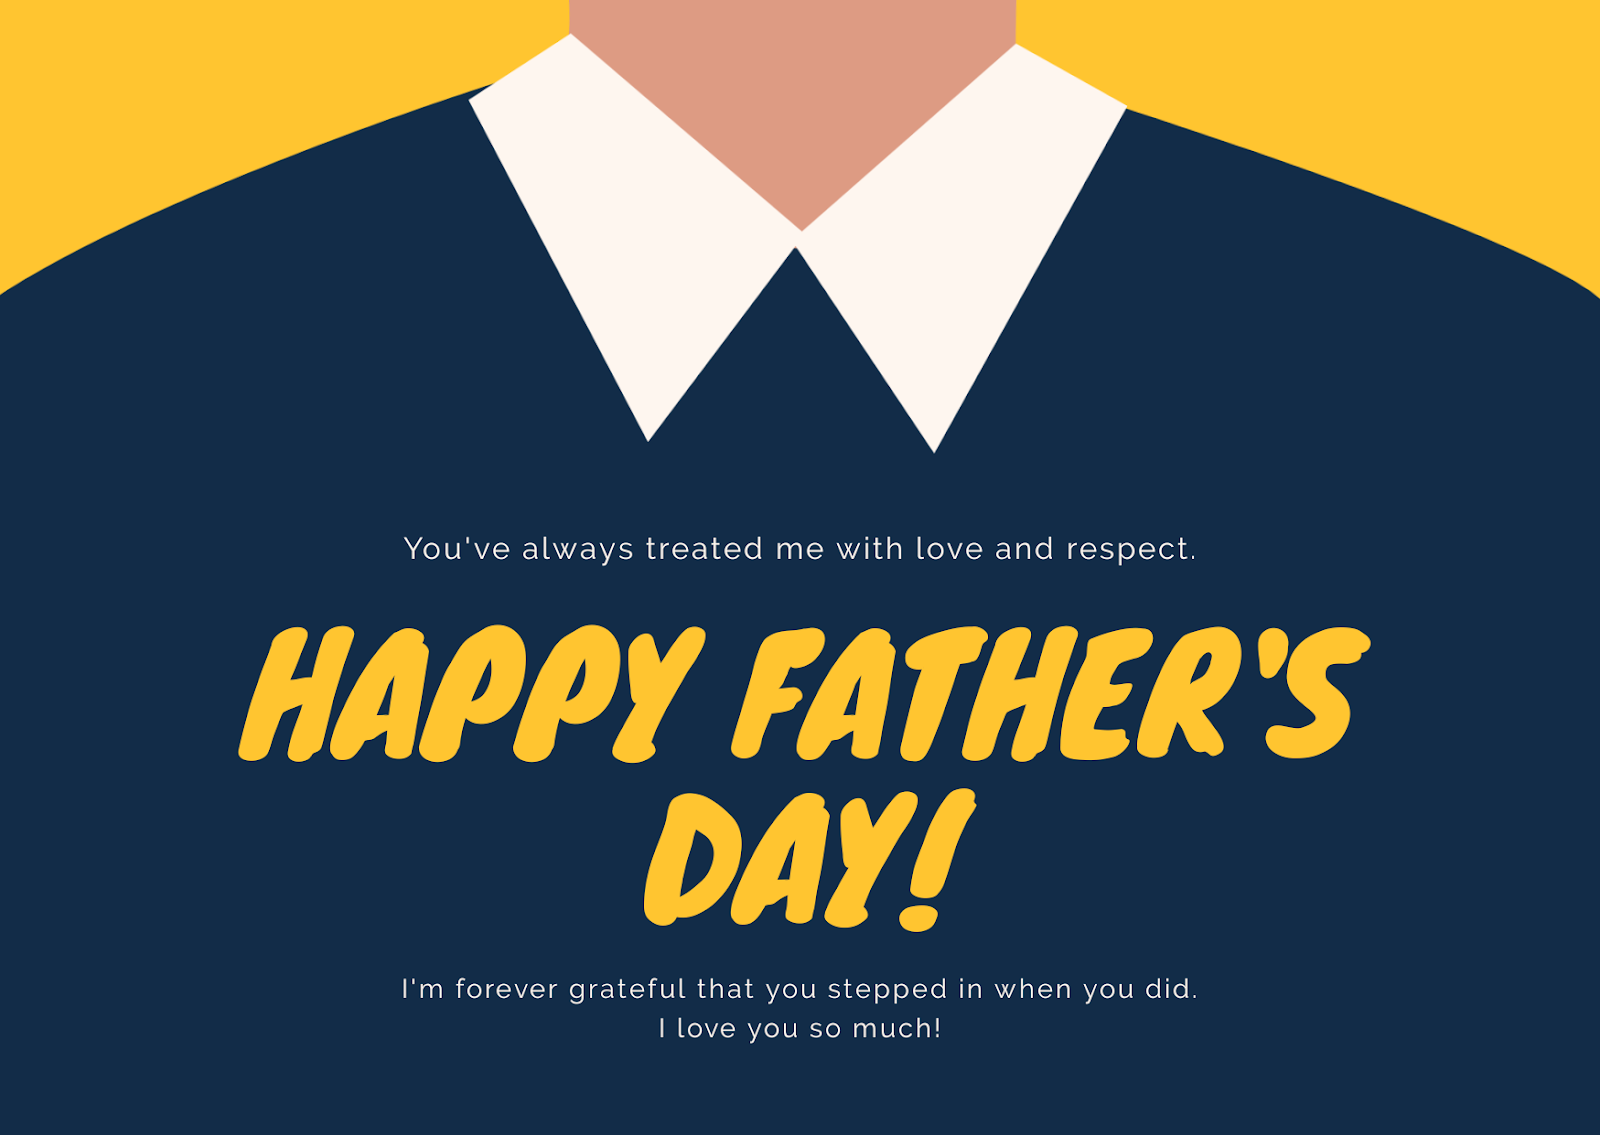 Happy fathers day wishes with quotes and images